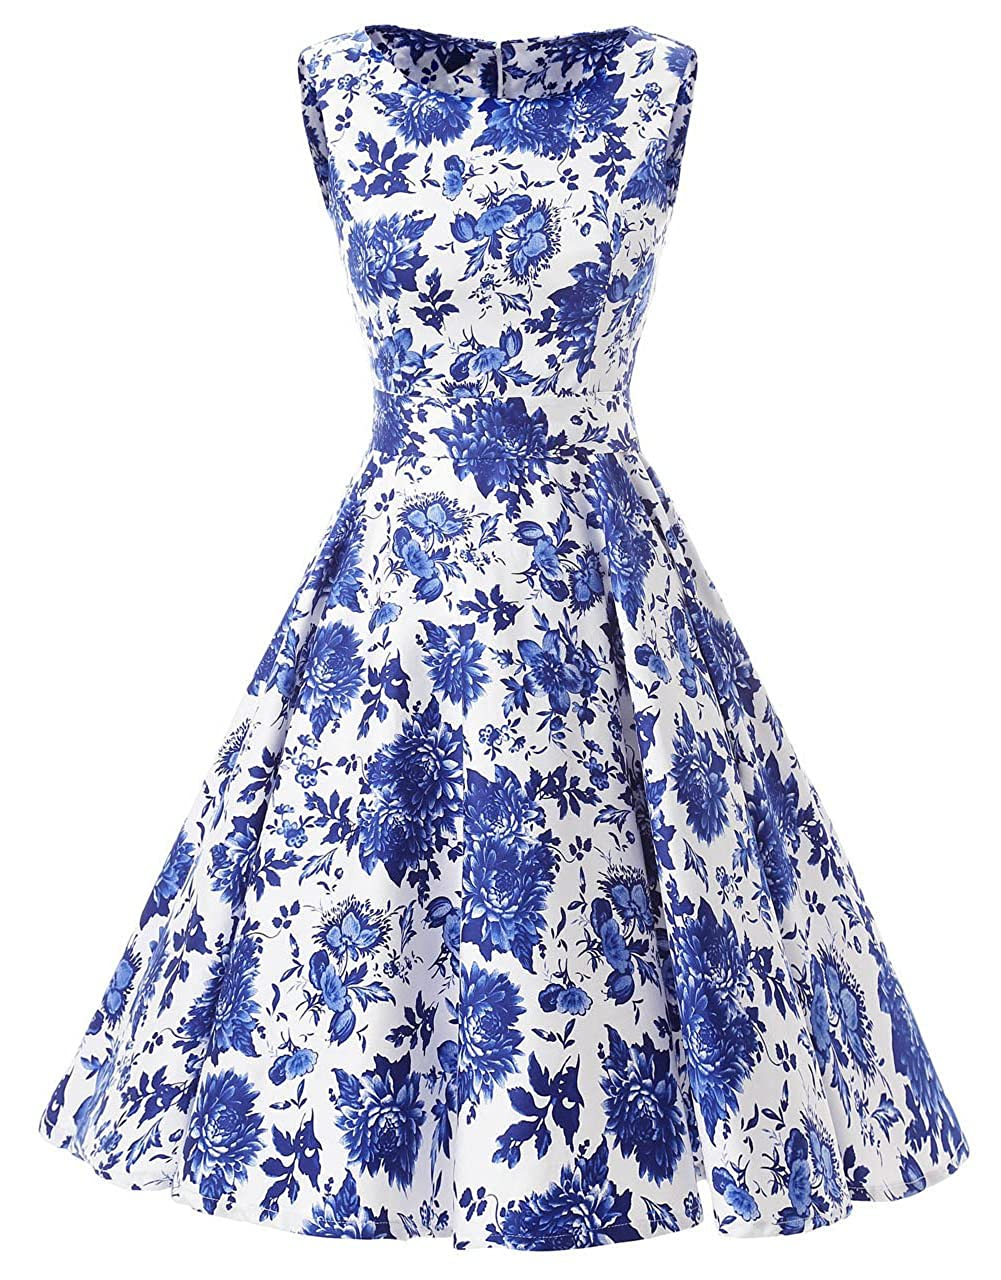 bluee Ensnovo Womens Vintage 1950s Sleeveless Retro Floral Print Rockabilly Swing Dress